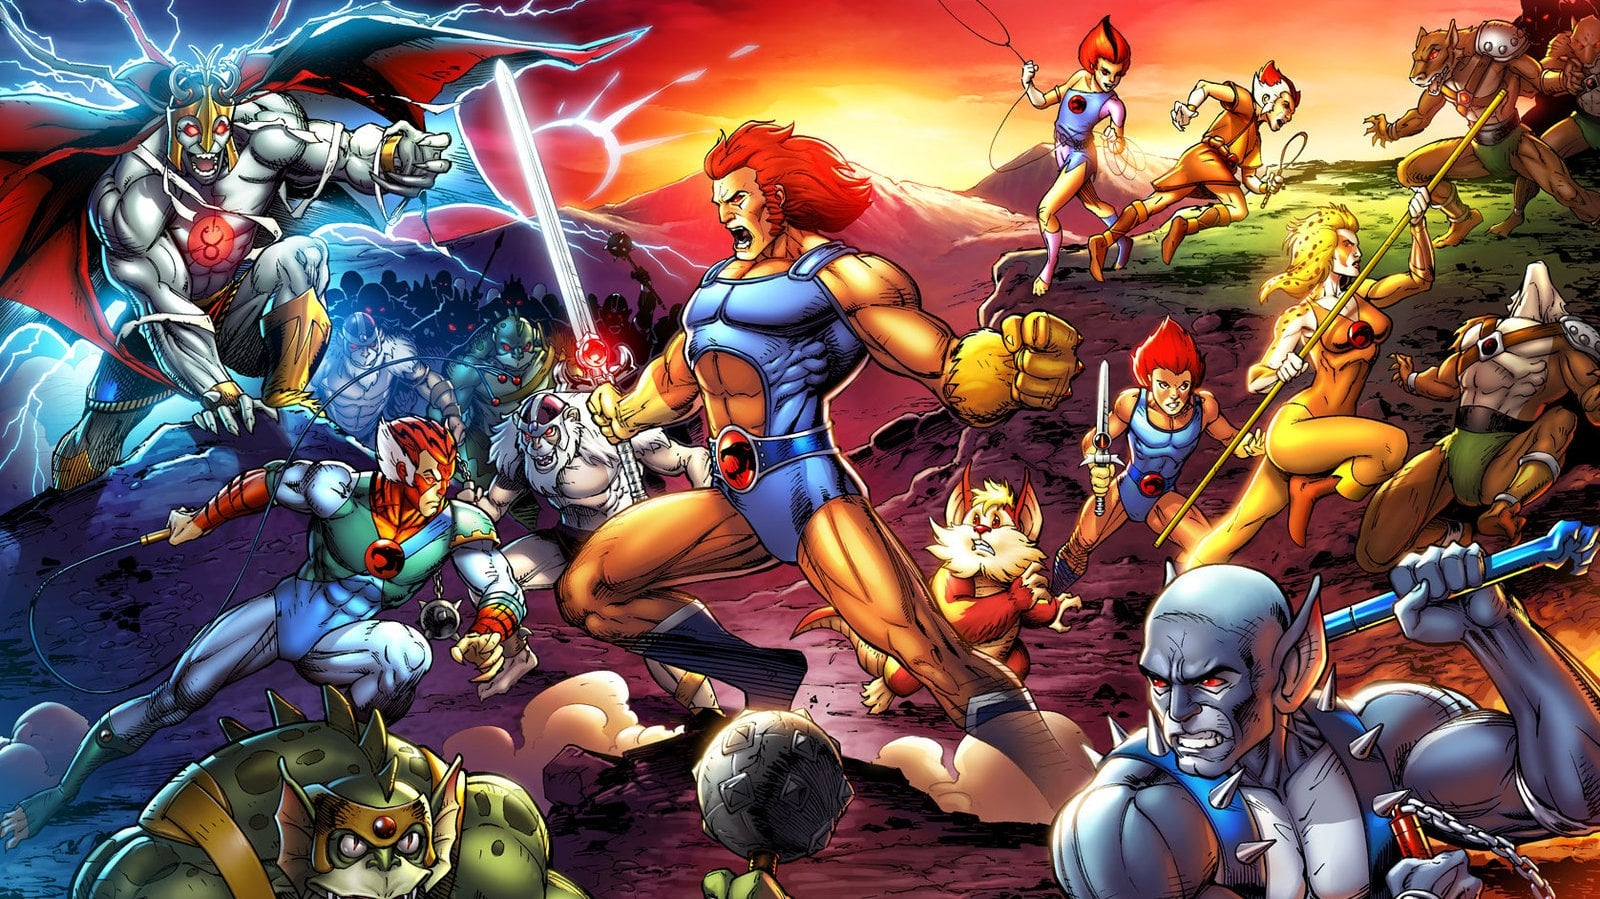 ThunderCats Roar vanaf 2019 bij Cartoon Networks